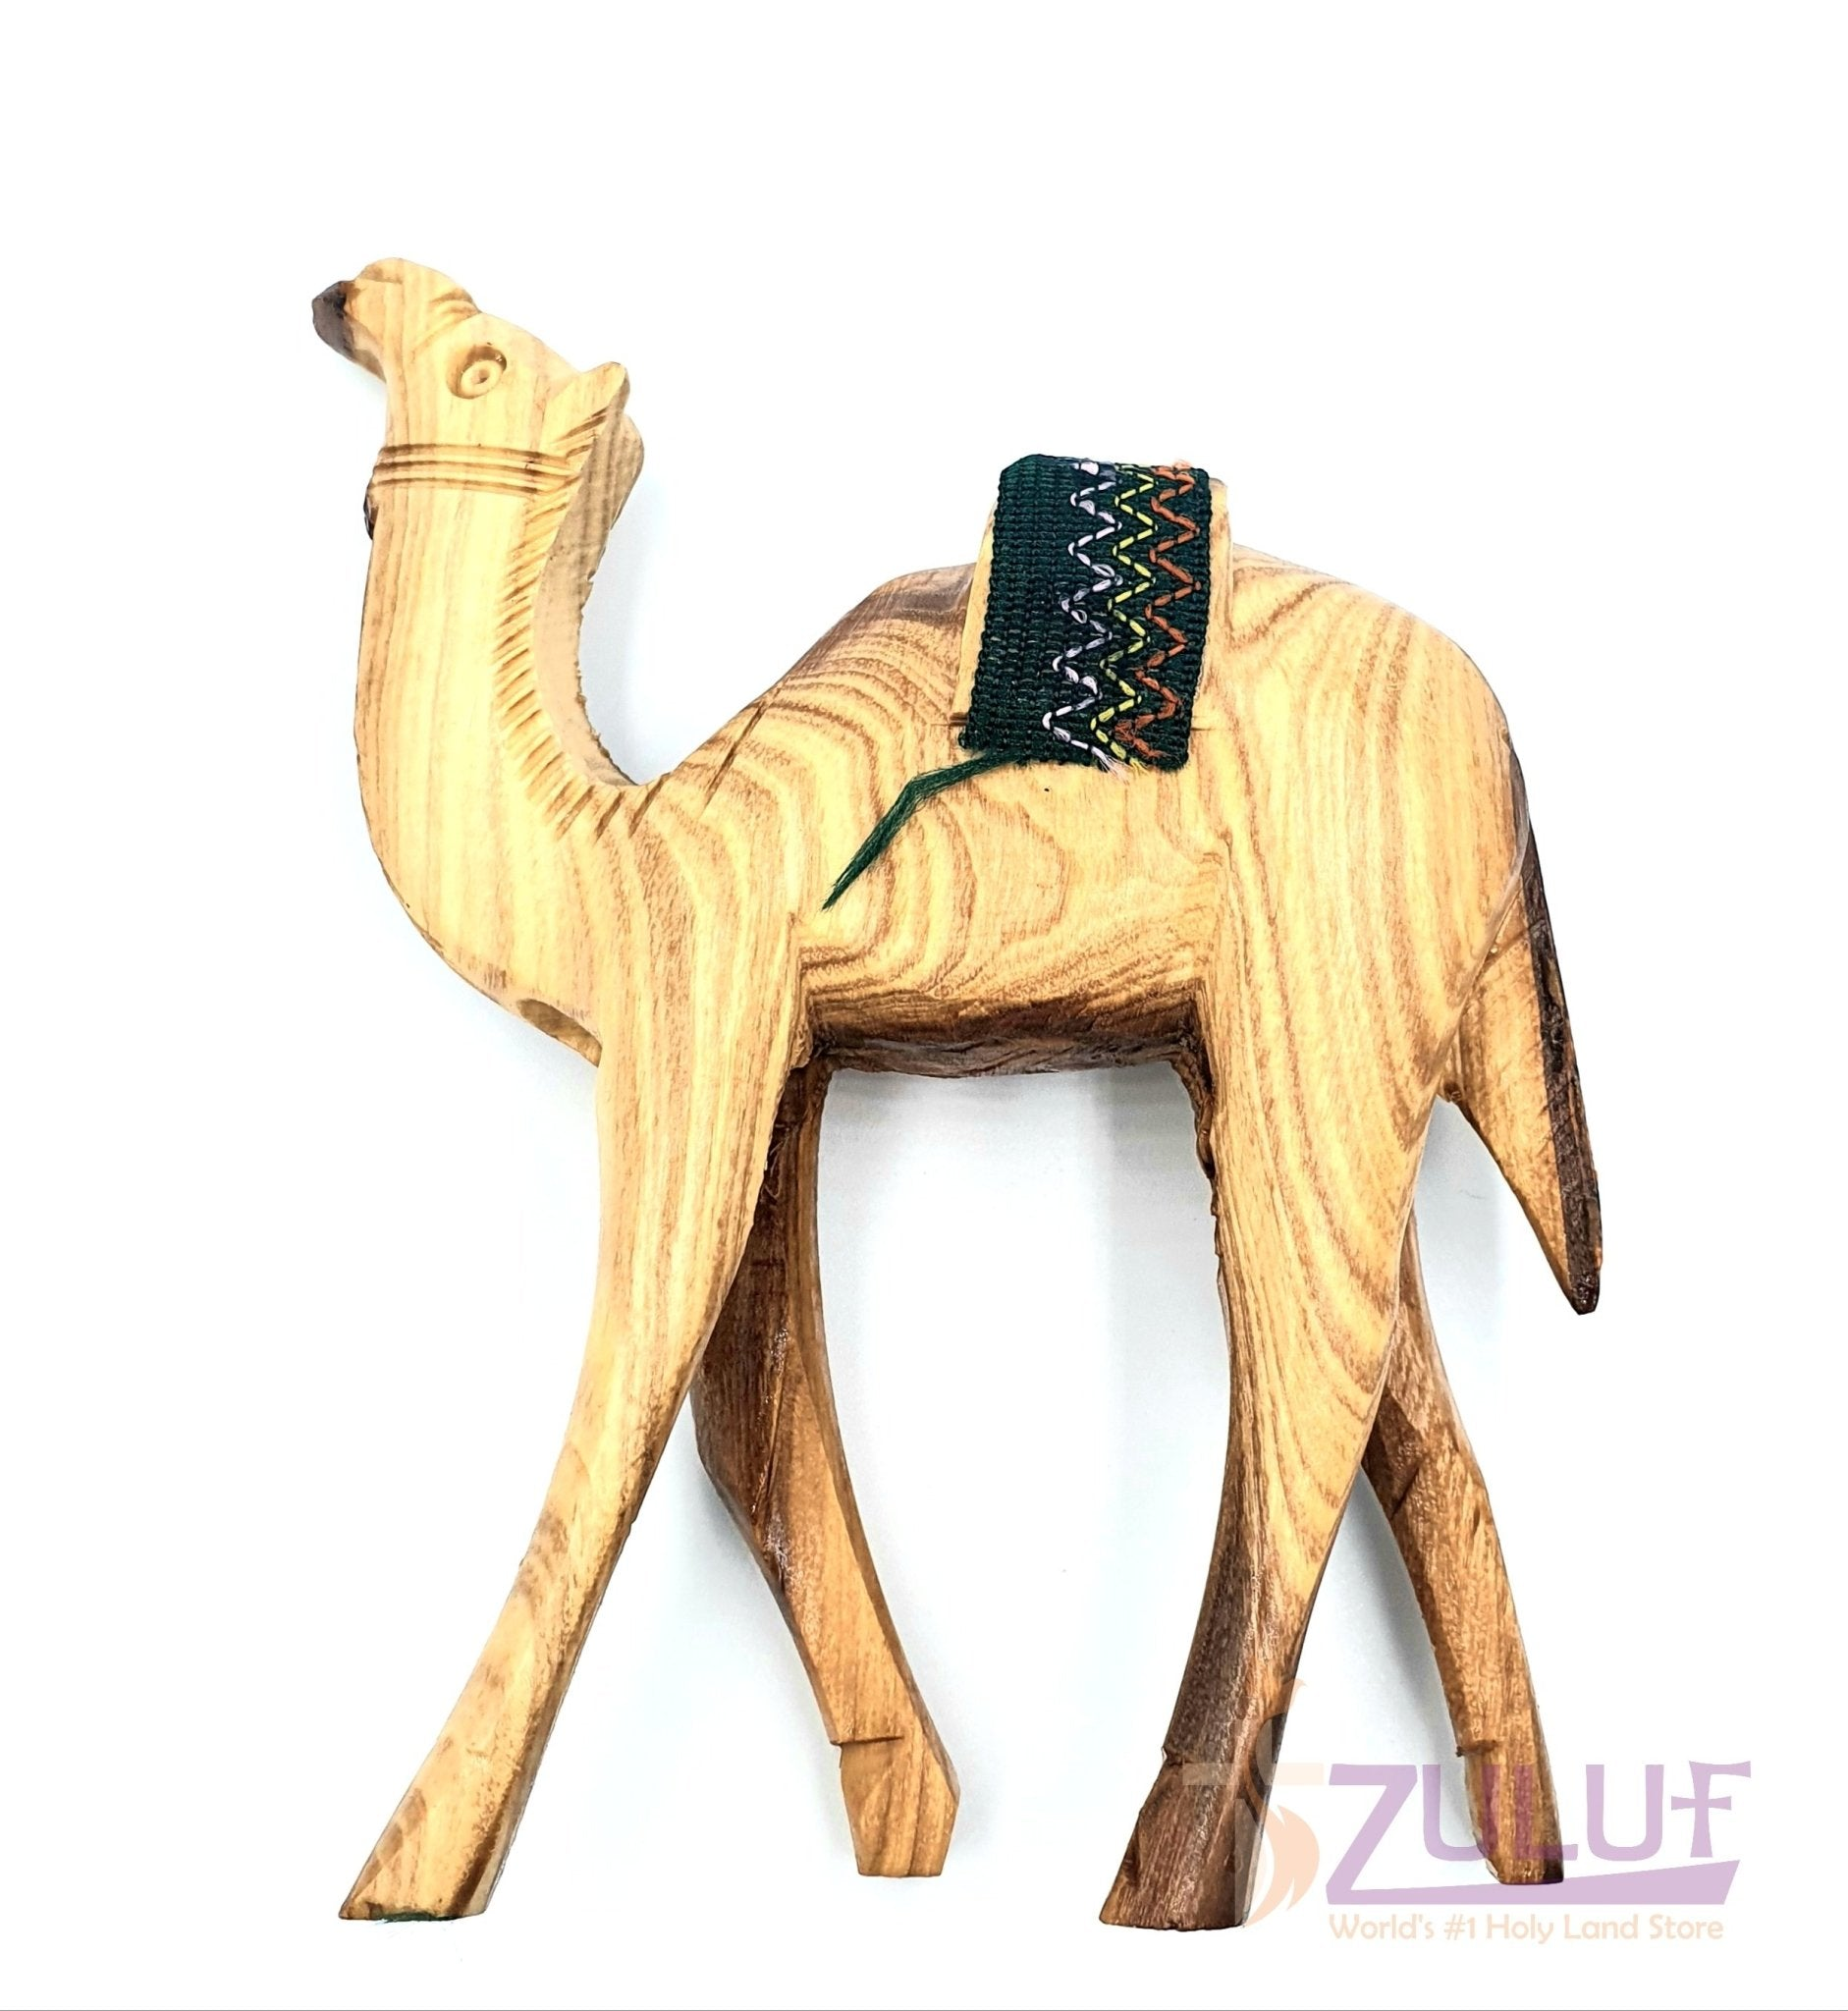 Christian Gift Olive Wood Camel Handmade Figure Red or green Saddle by 14.5cm ANI001 - Zuluf